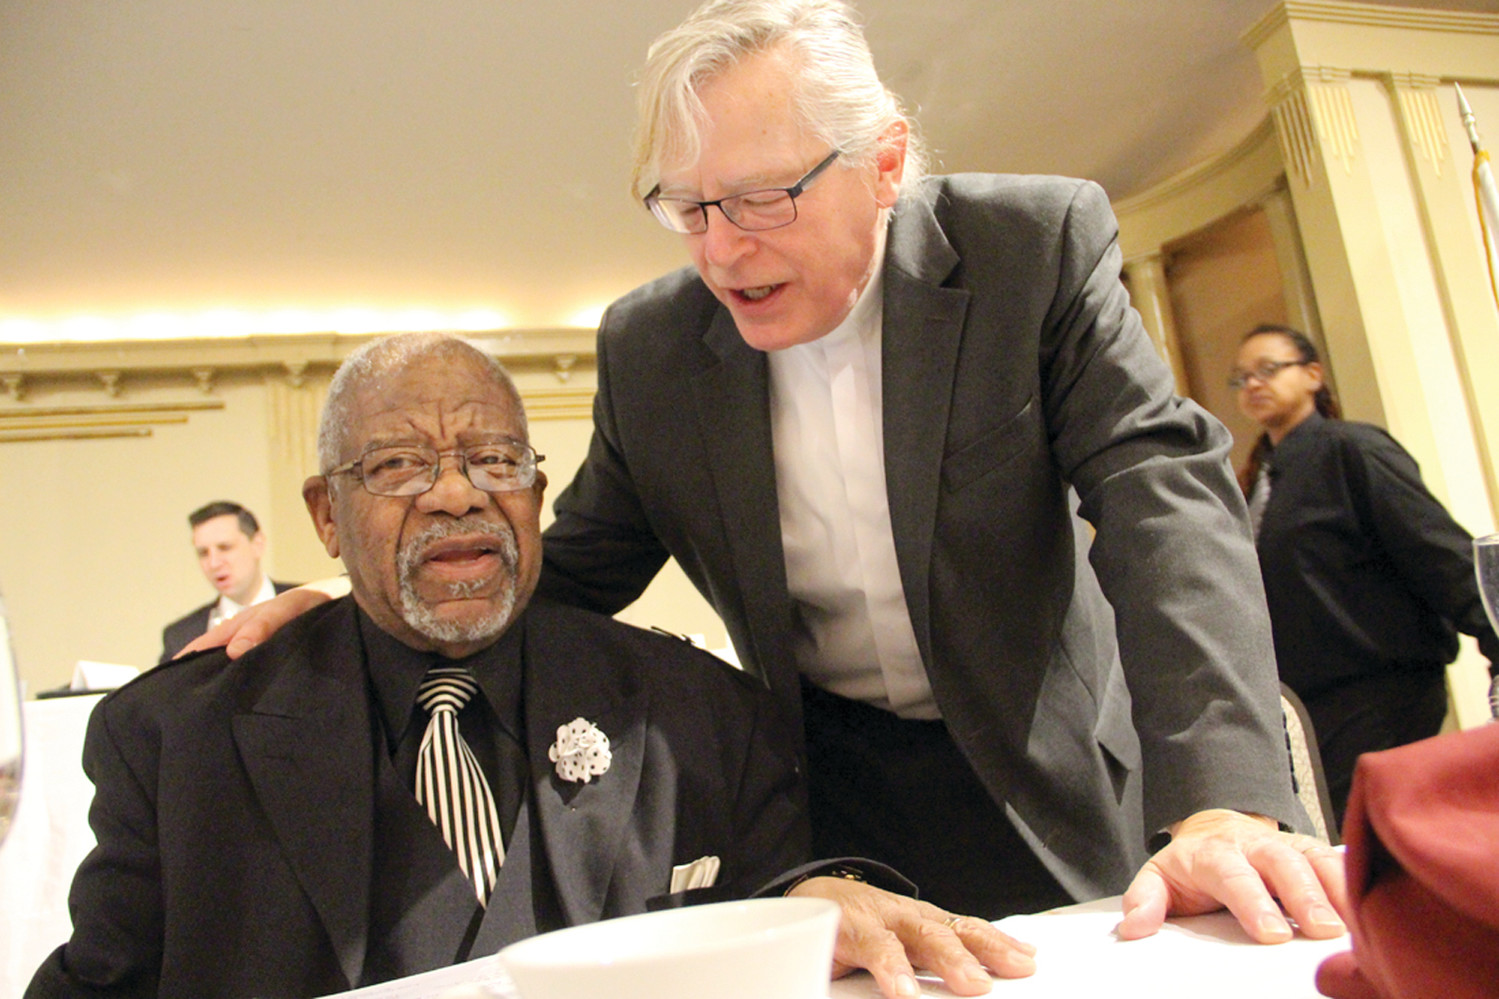 CELEBRATING MLK: Reverend Dr. Sammy Vaughan, past president of the Rhode Island Ministers Alliance, and Rev. Donald Anderson, executive minister of the Rhode Island State Council of Churches, at Monday's breakfast.